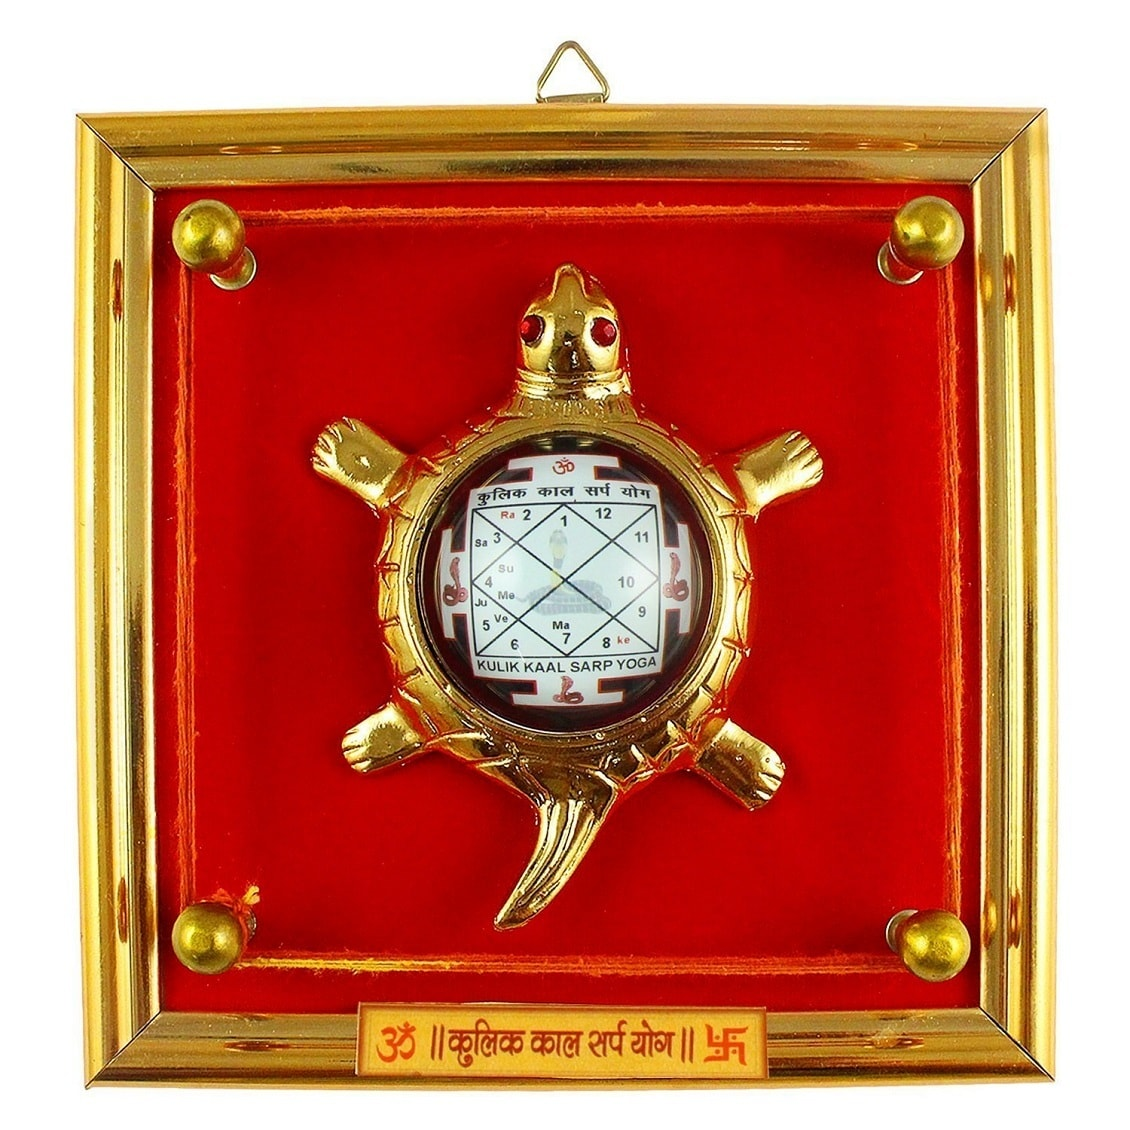 Numeroastro Kulik Kaal Sarp Yog Yantra On Brass Turtle/Tortoise In Frame For Good Luck (Wall Hanging) (17 Cms) (1 Pc)